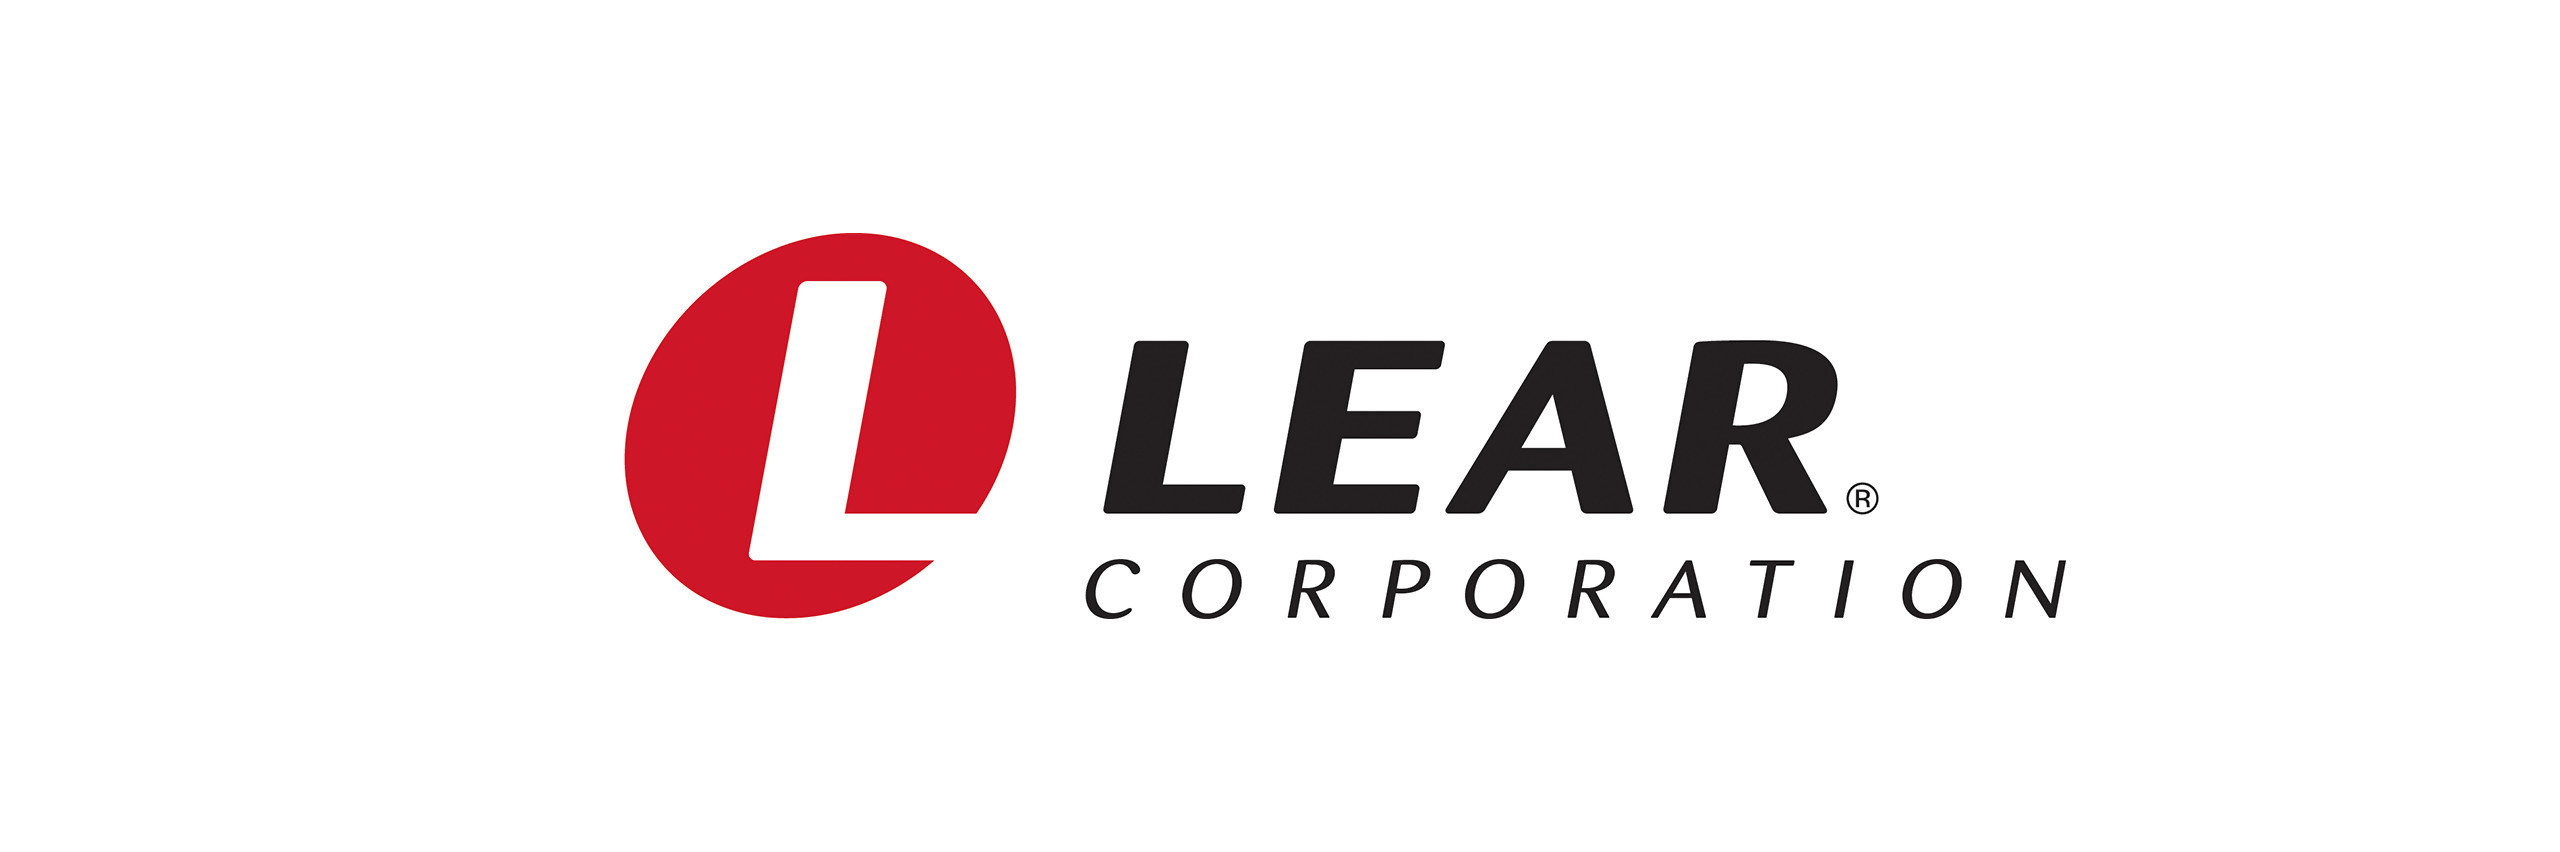 Lear Investor Day